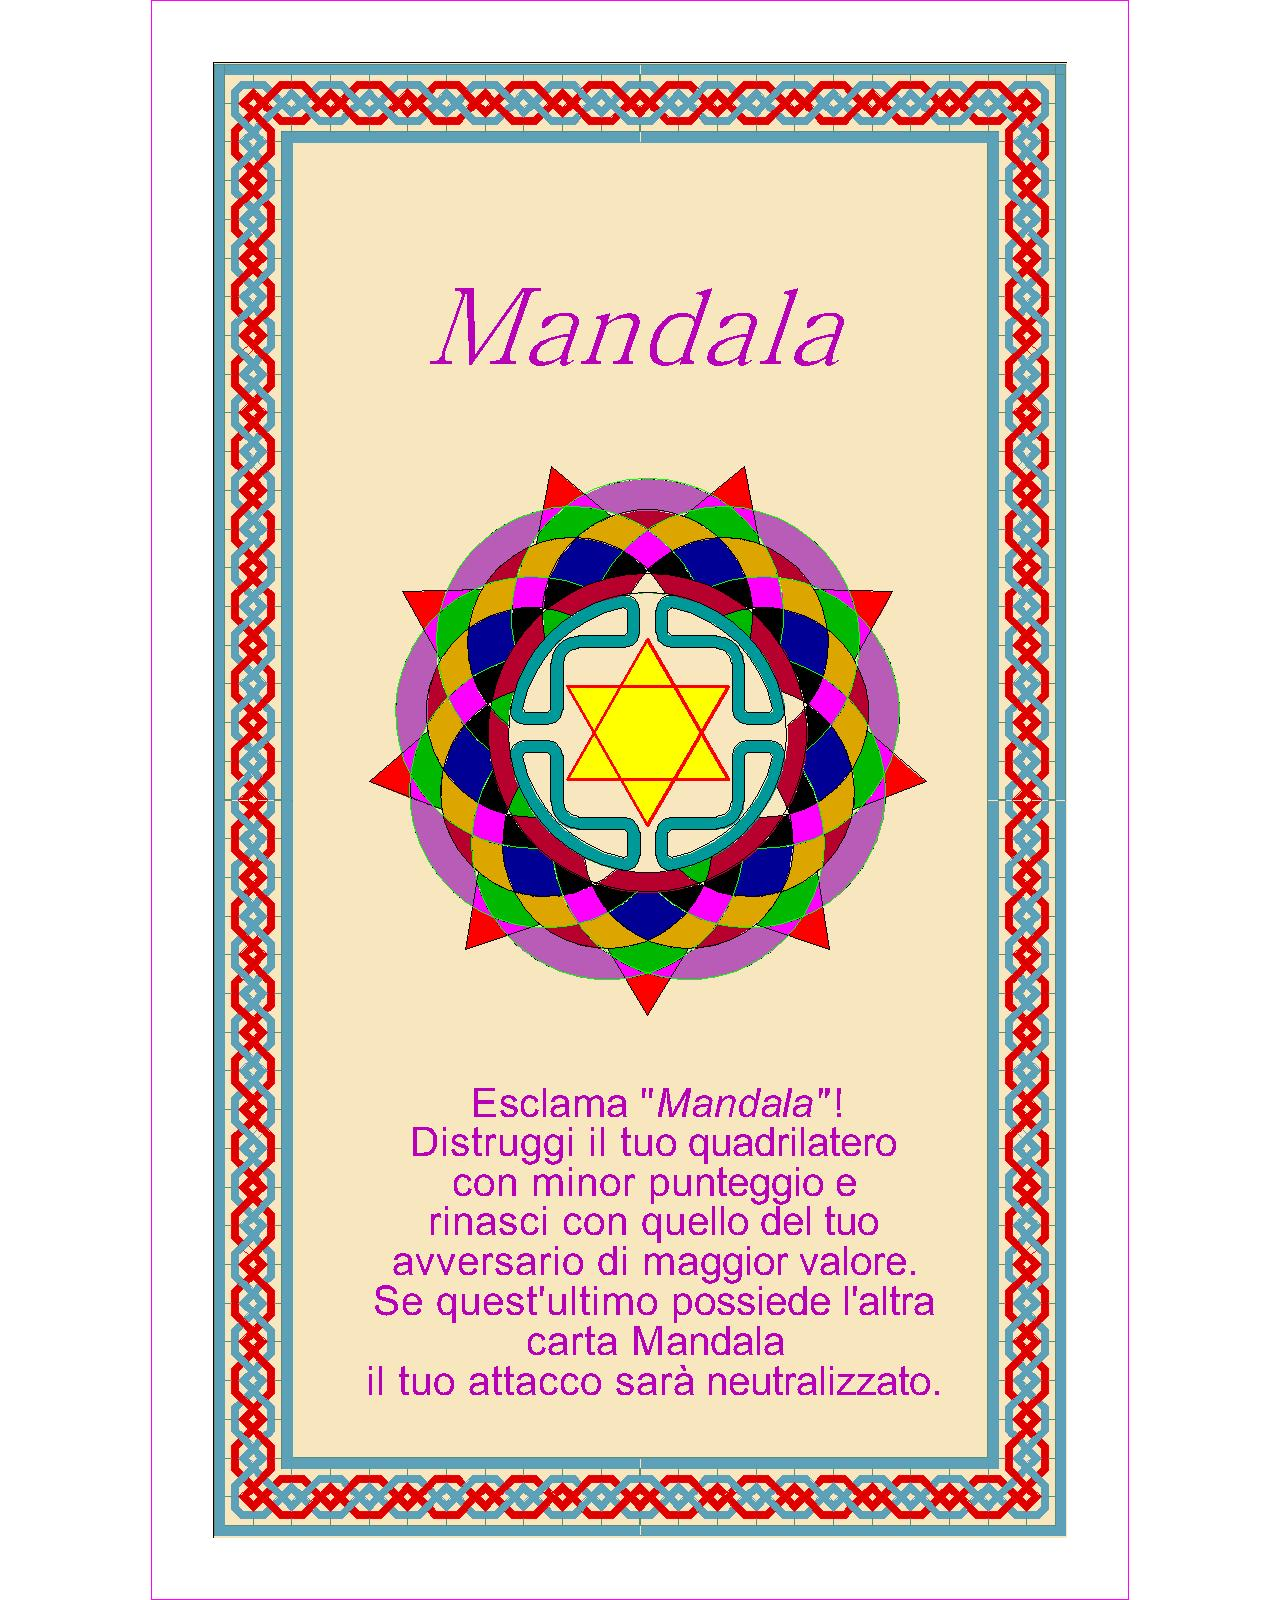 015. Mandala b-Model (Coach M.C. Petroli)